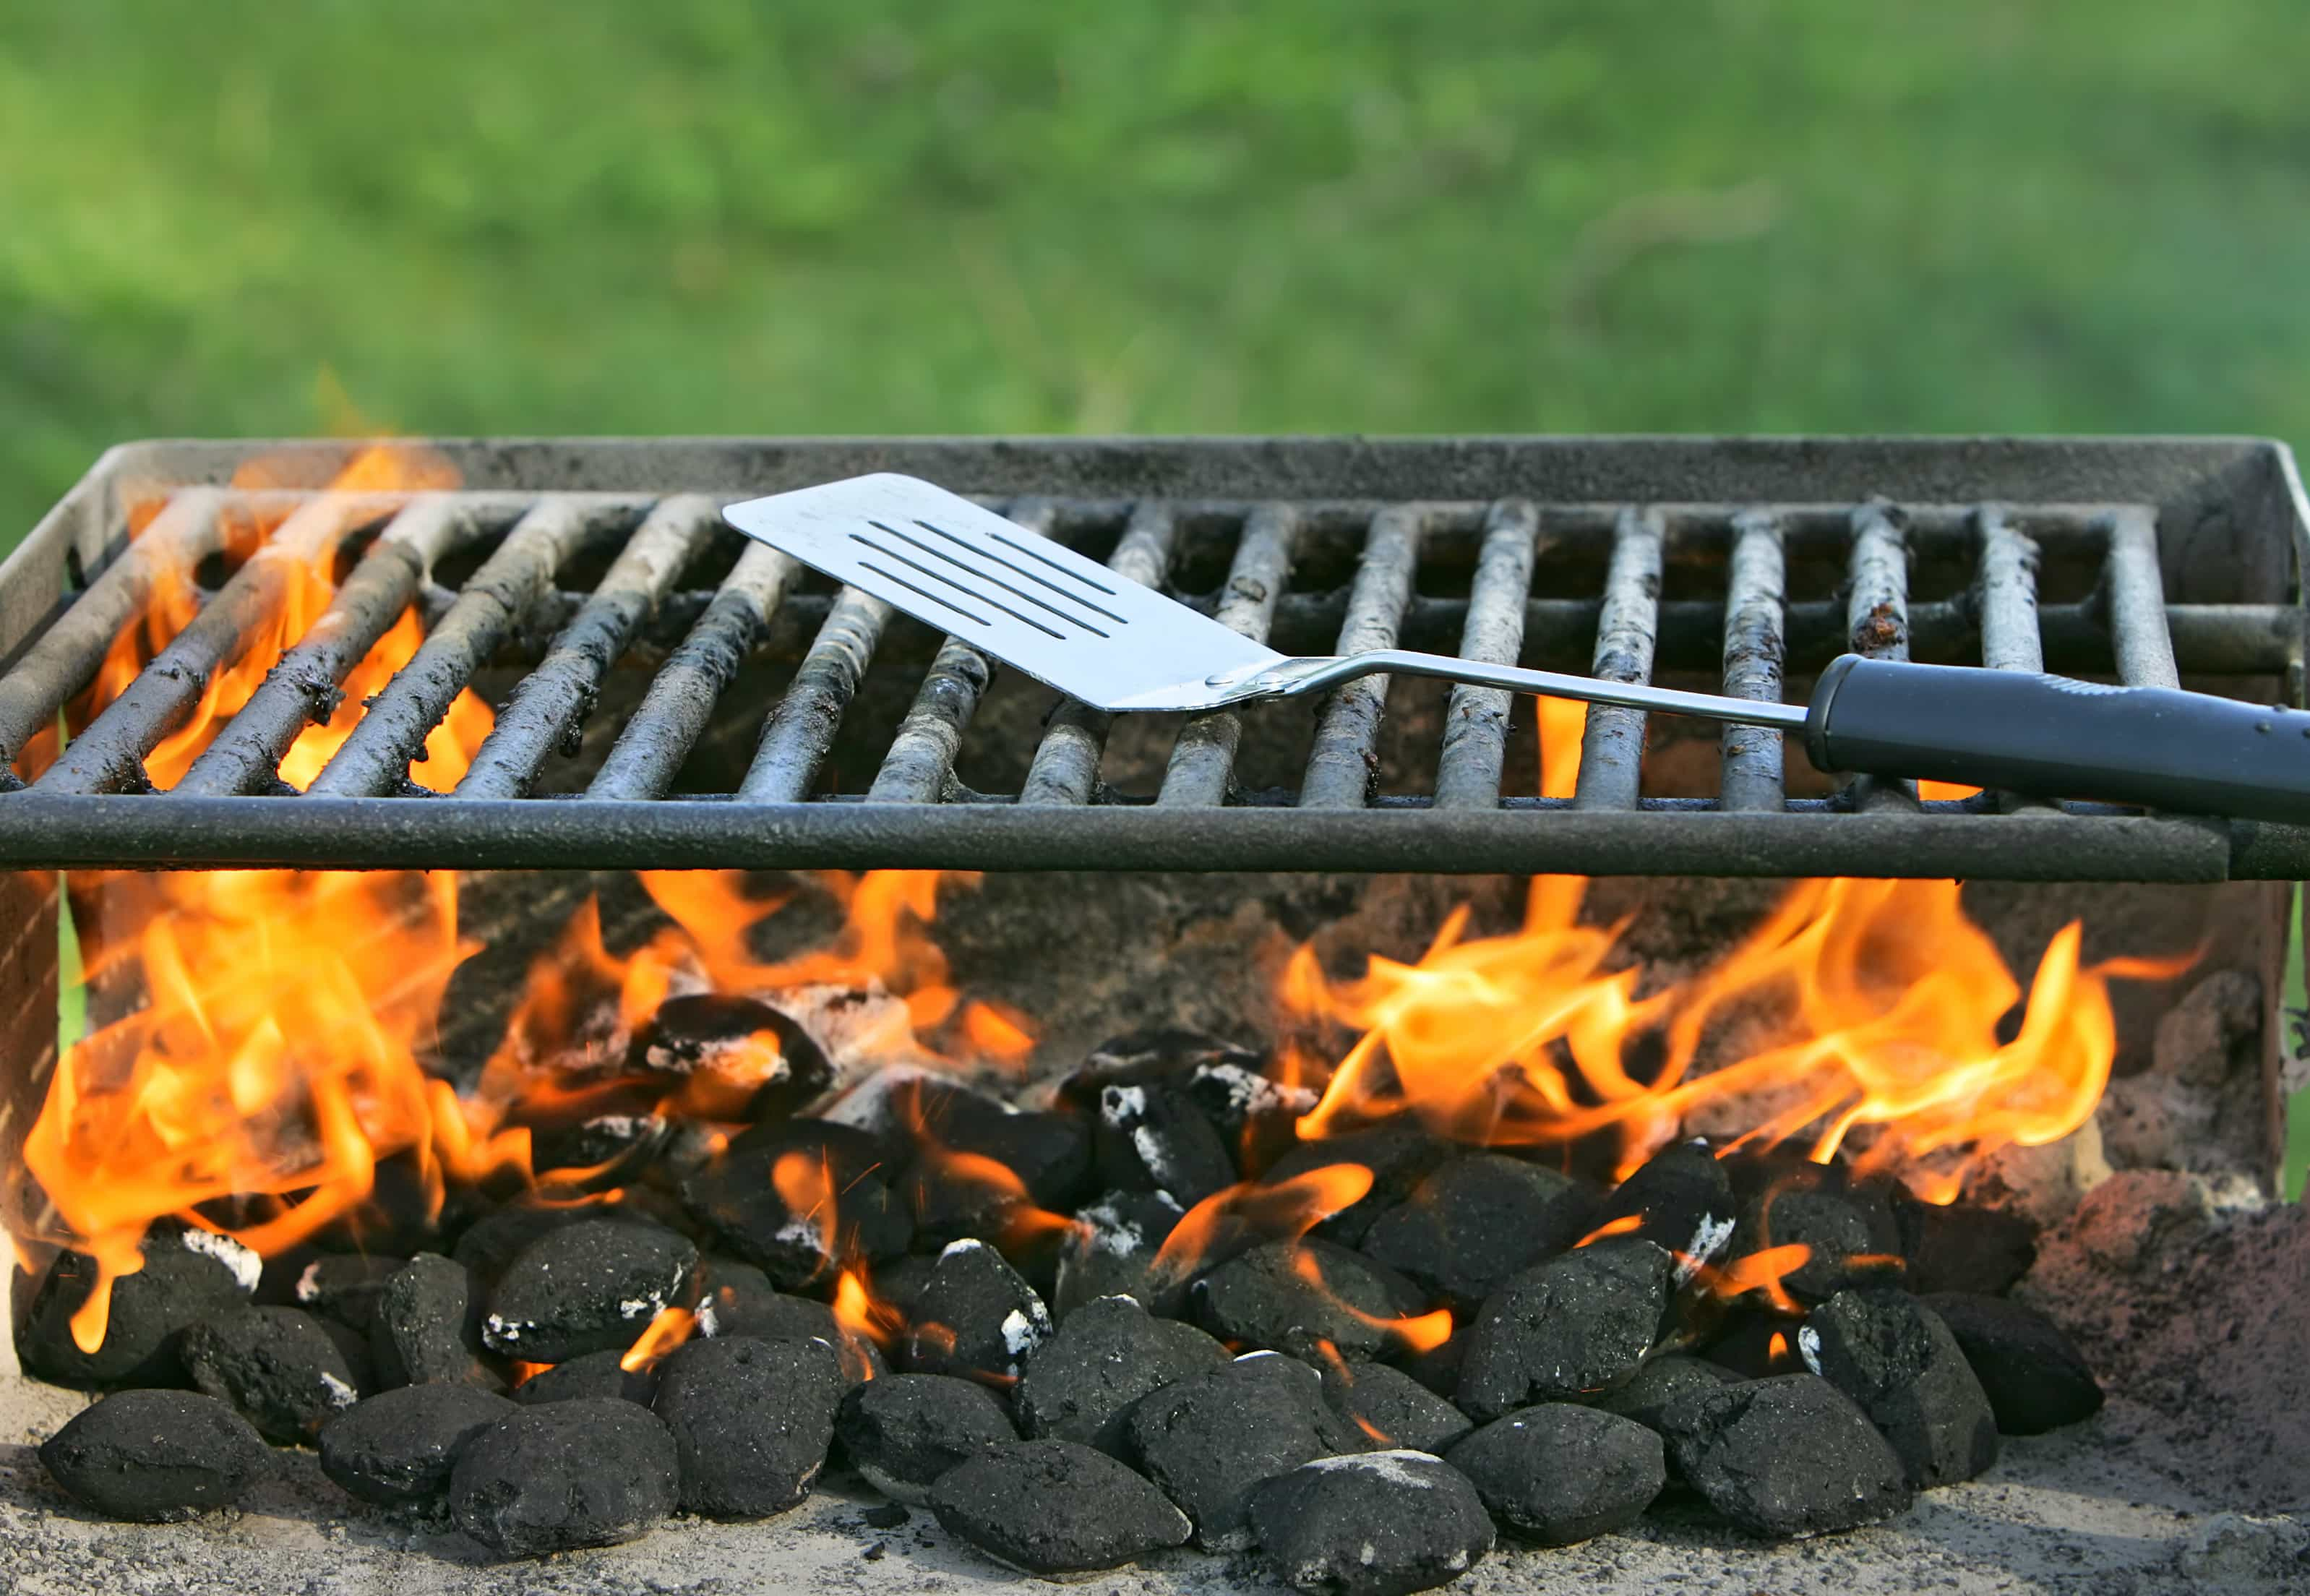 How To Use A Charcoal Grill: An In-Depth Guide